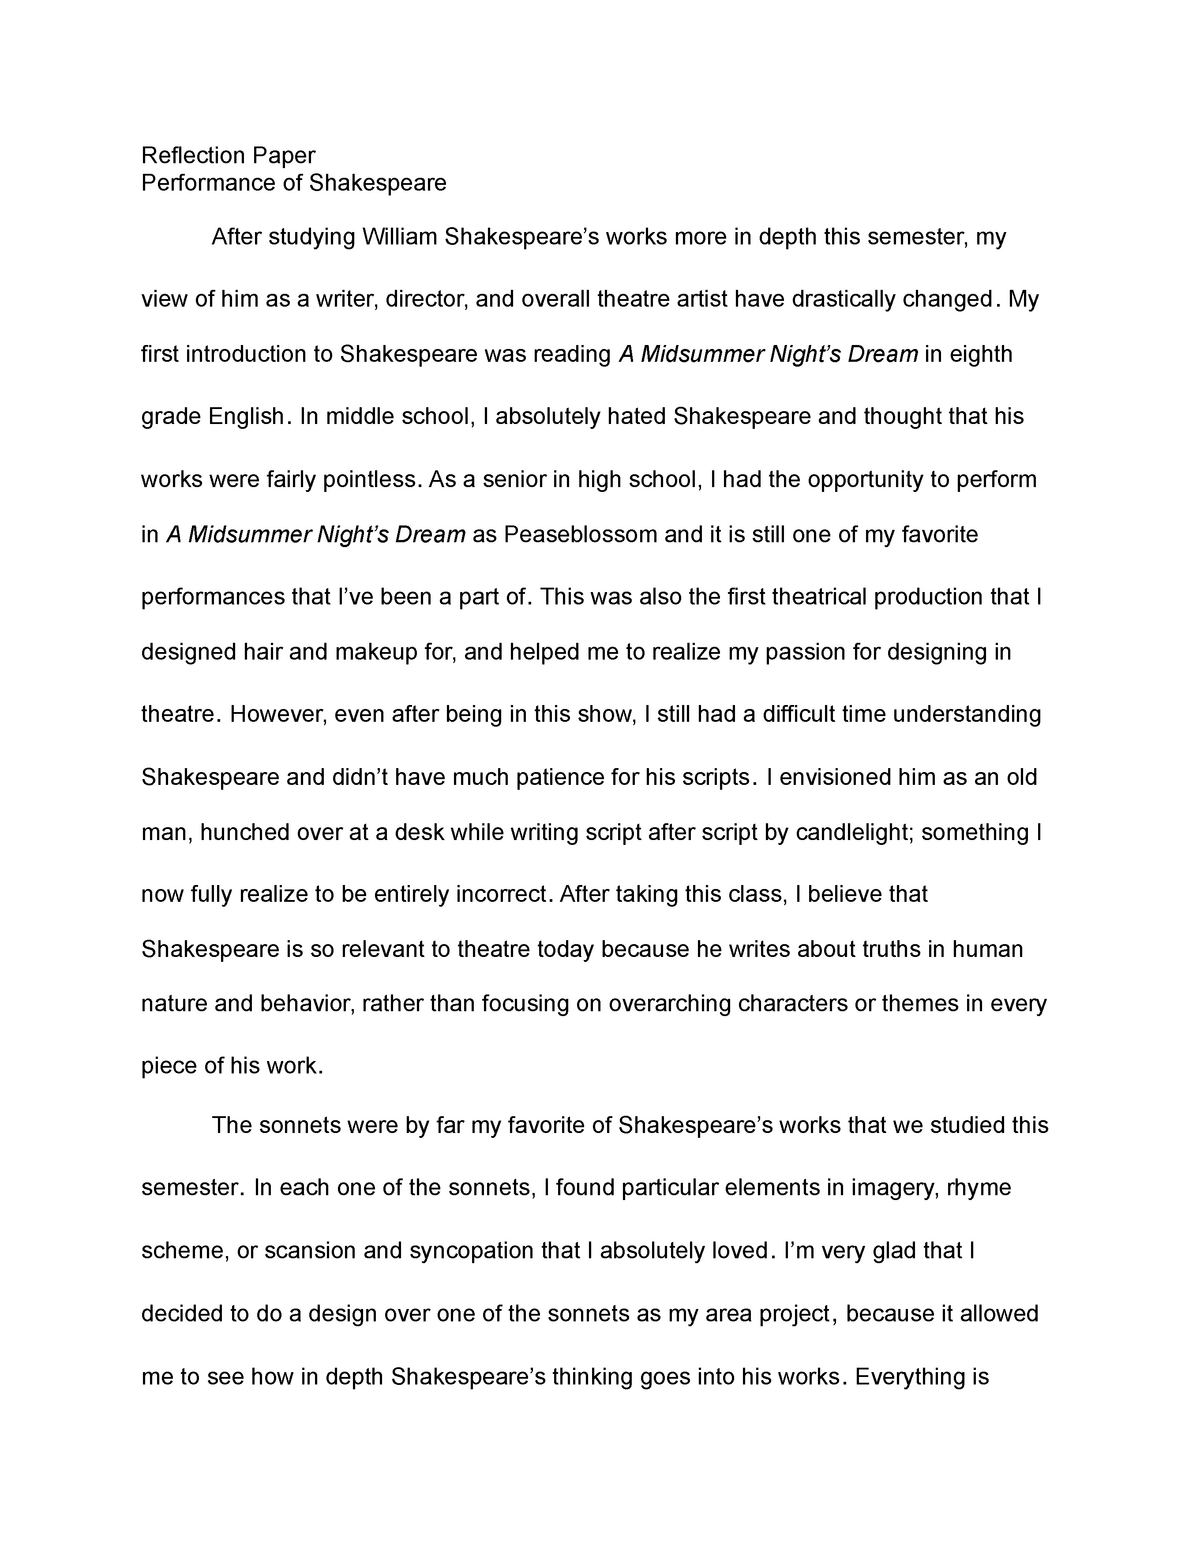 pay to do professional reflective essay on shakespeare